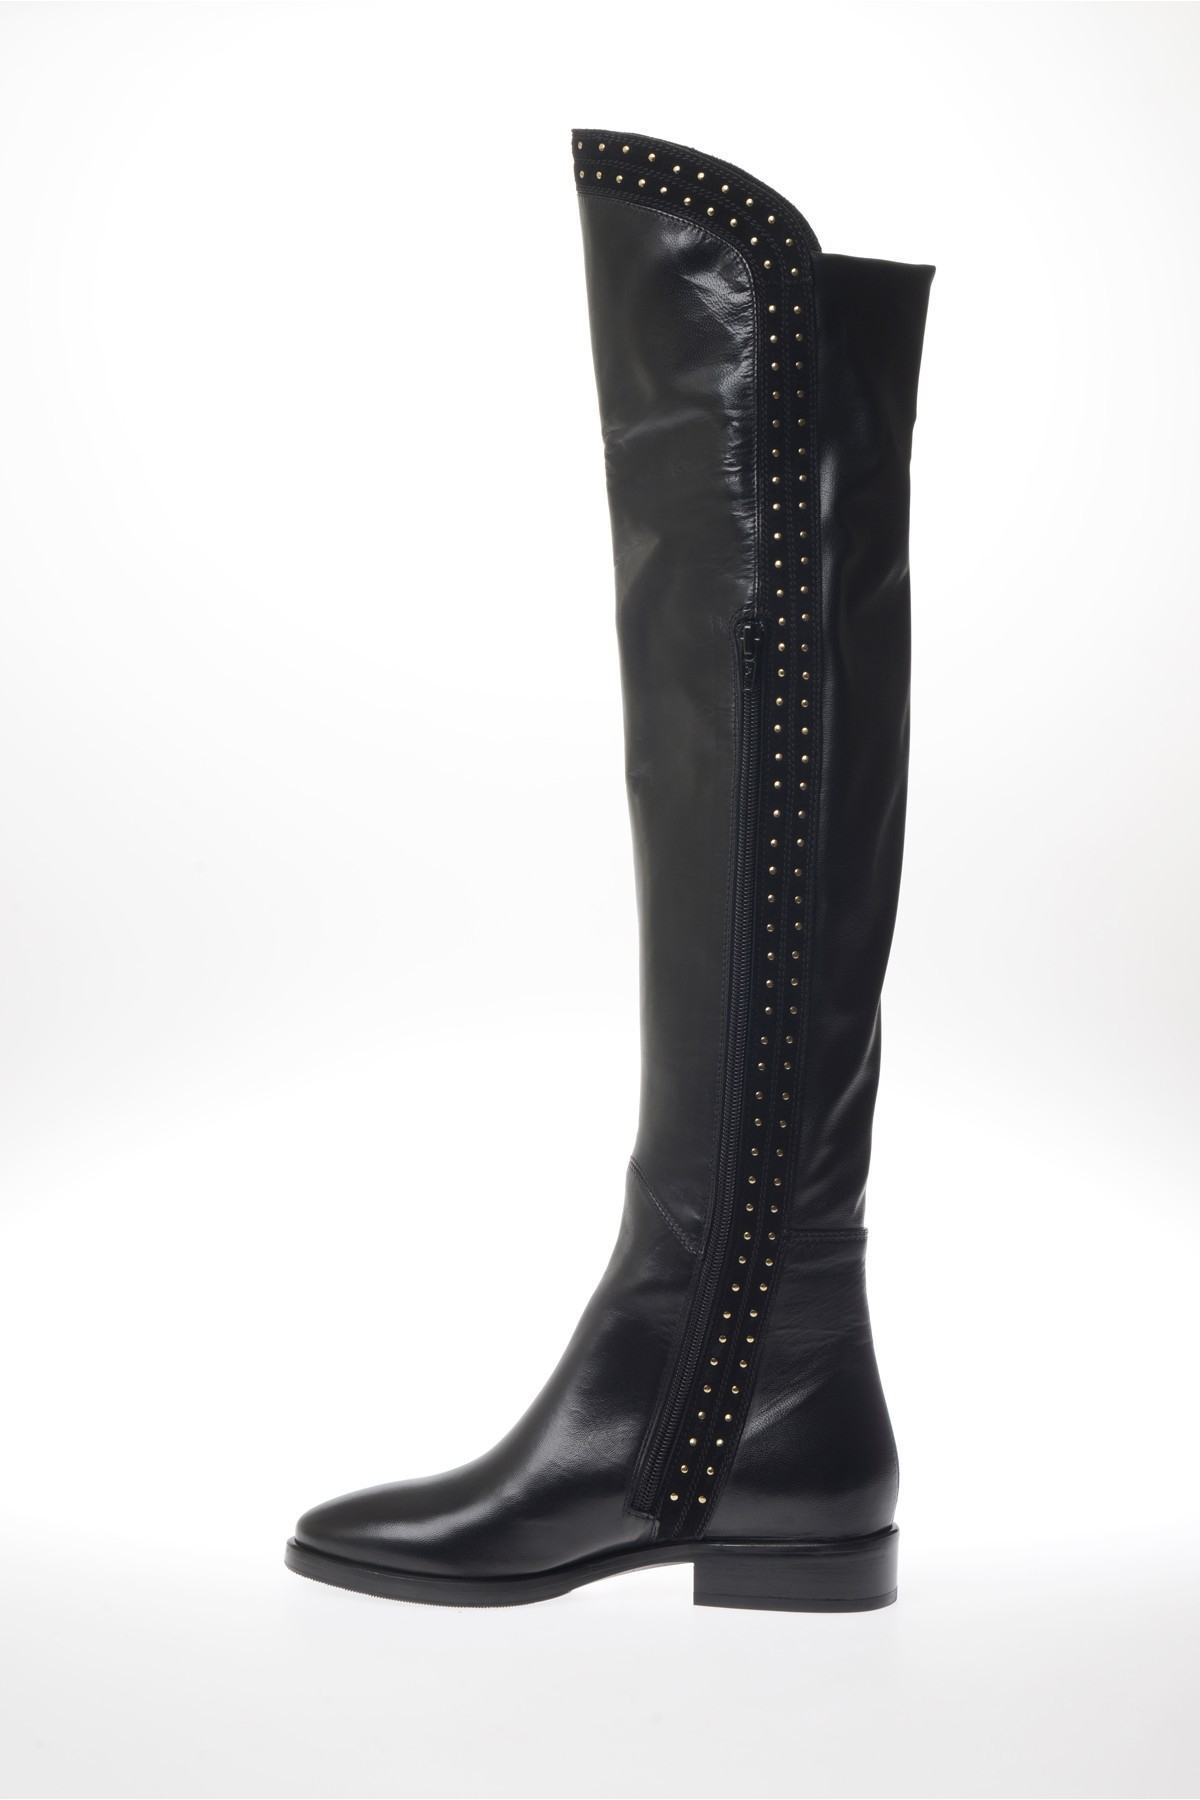 le pepe le pepe high stretch leather boots in black lyst